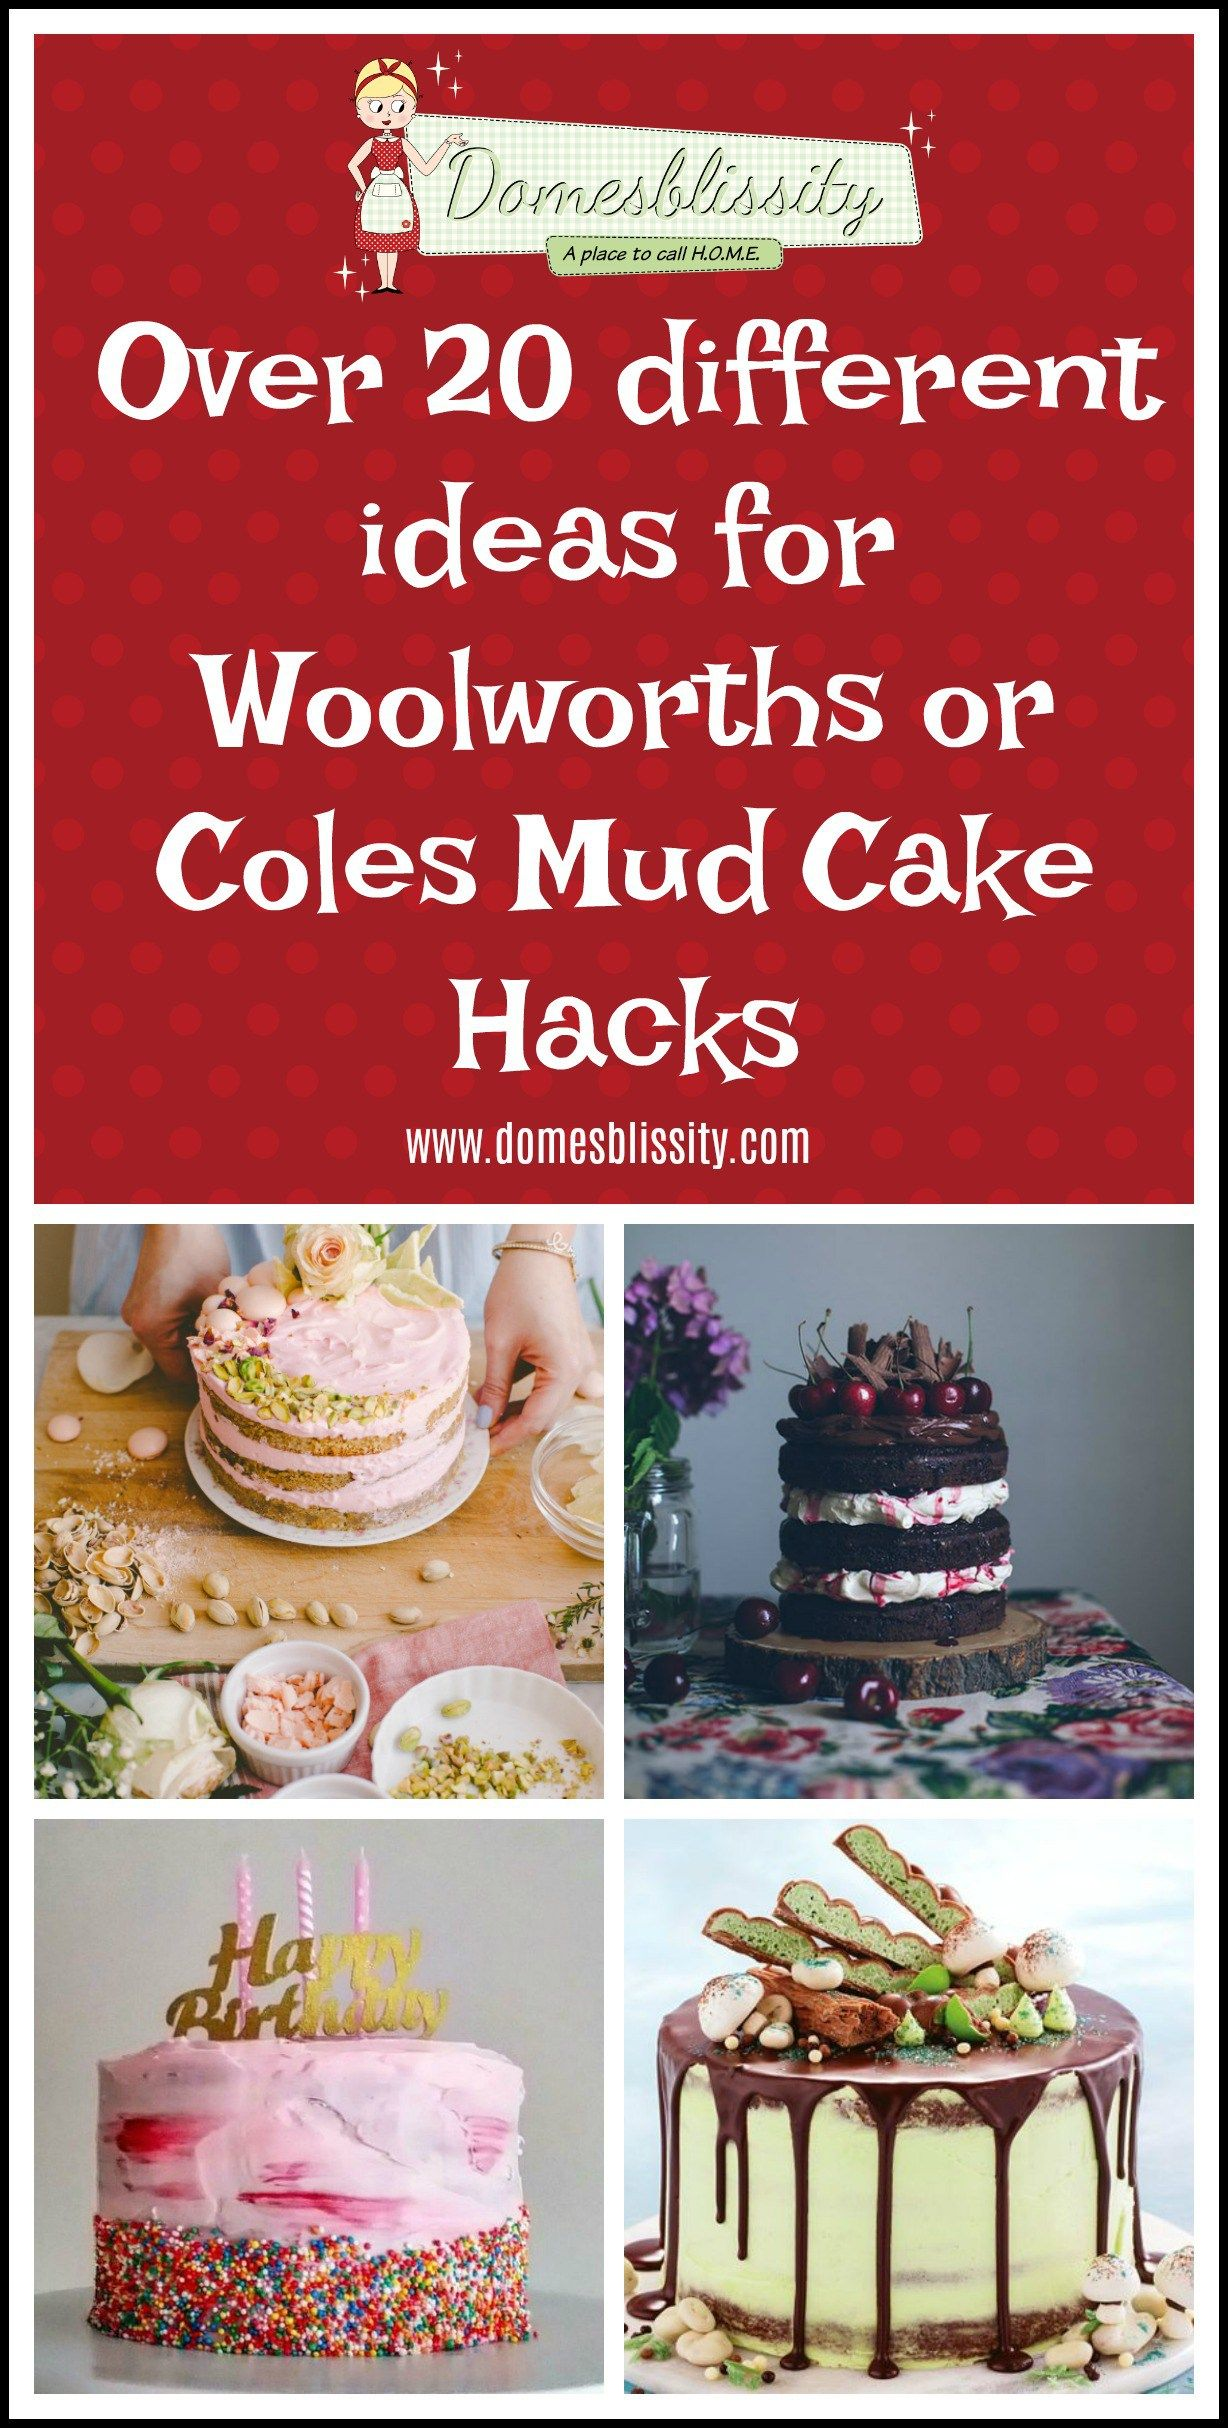 woolworths or coles mud cake hacks over 20 different ideas rh pinterest com